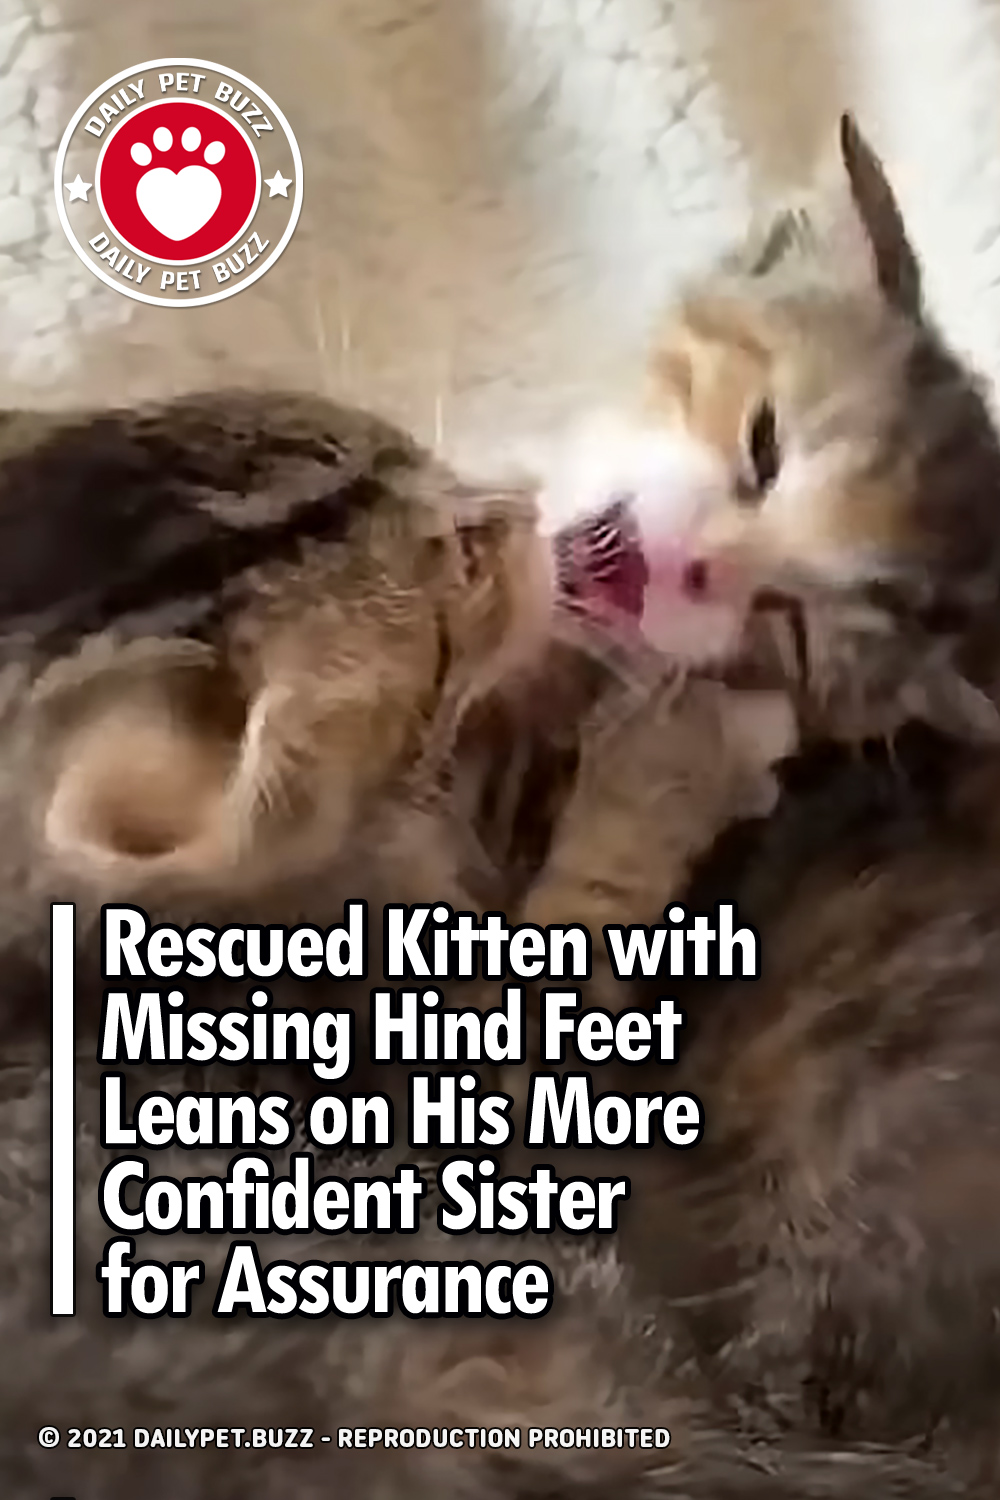 Rescued Kitten with Missing Hind Feet Leans on His More Confident Sister for Assurance